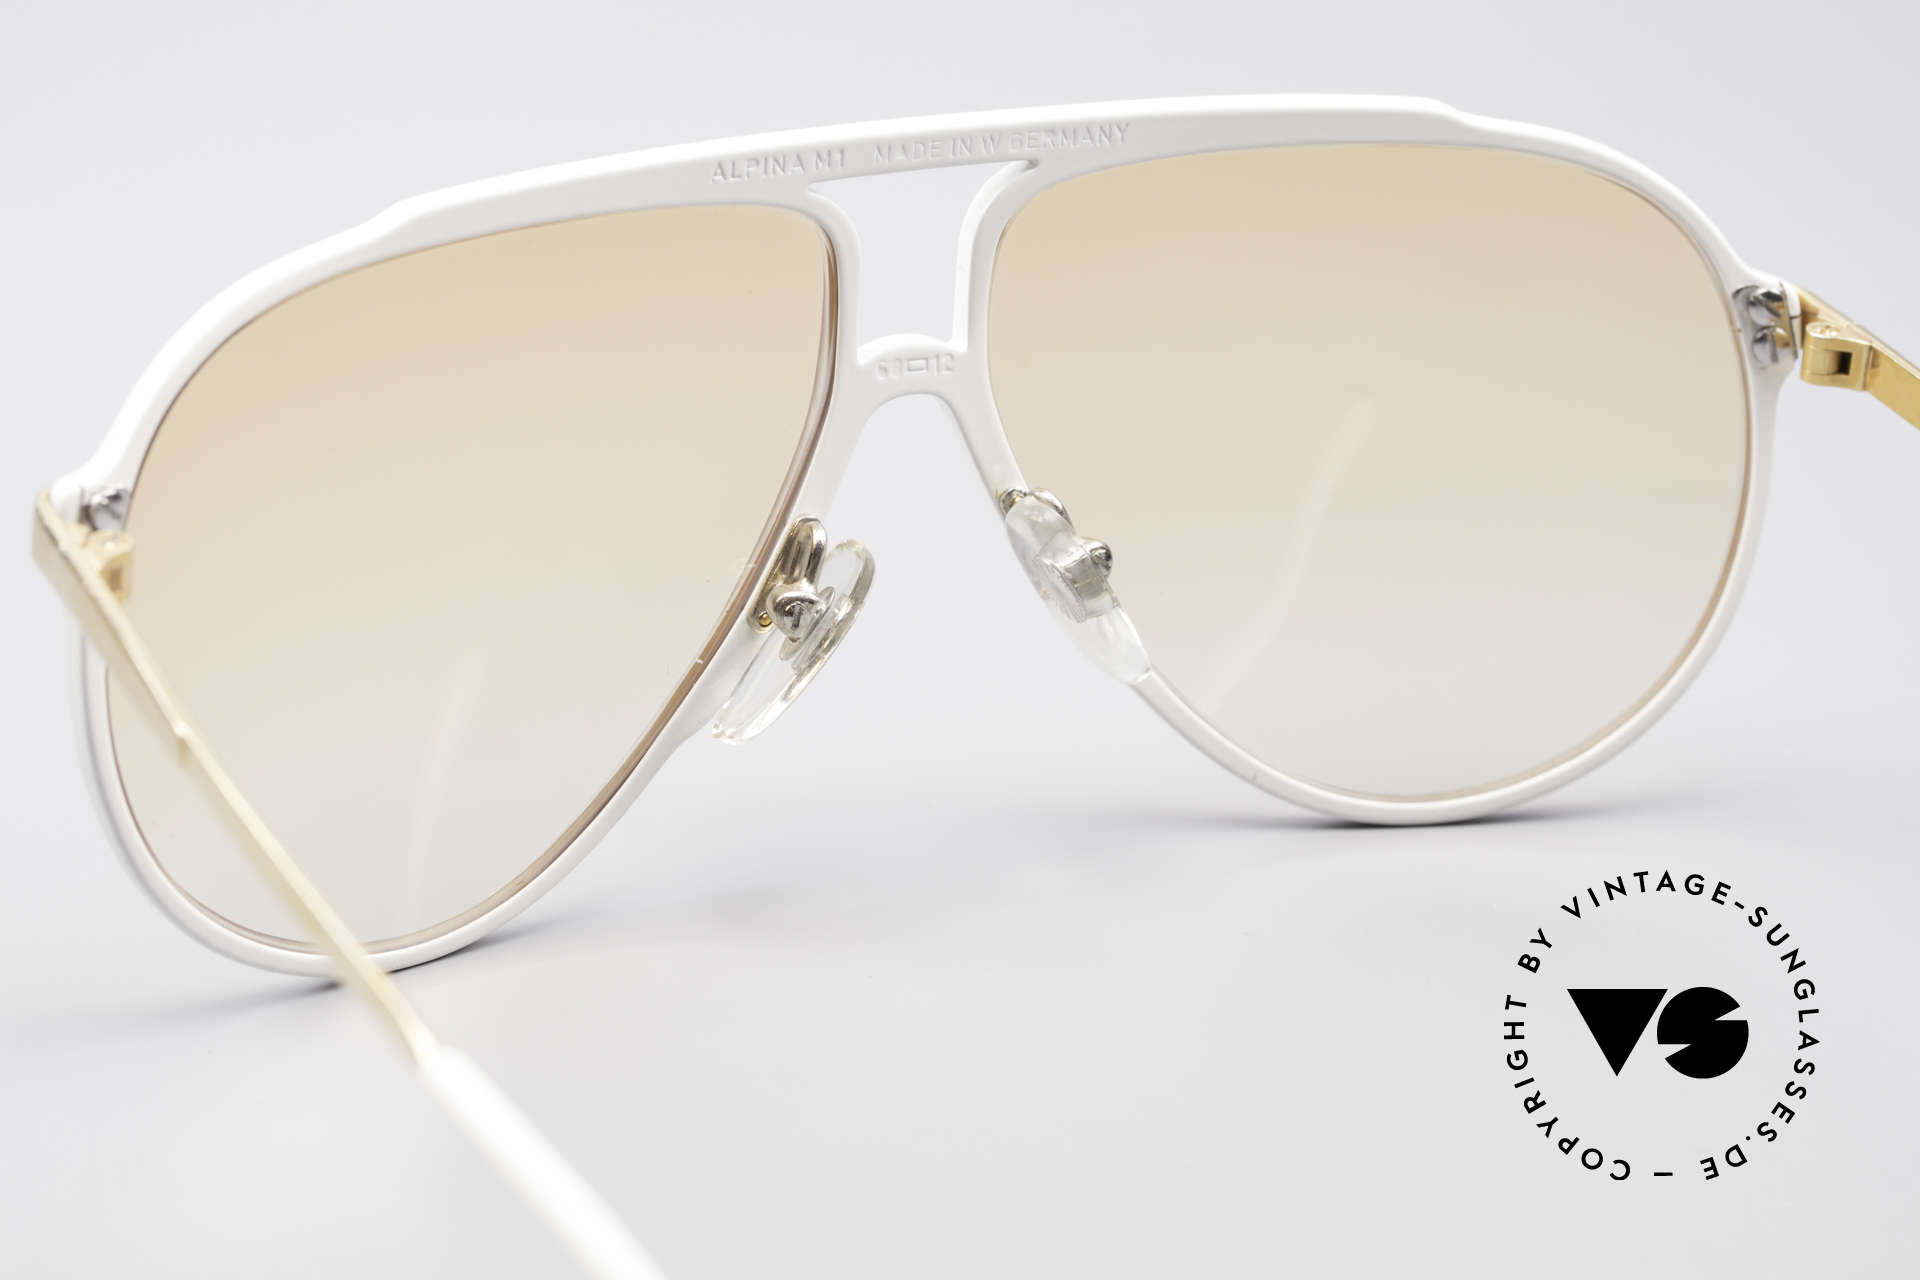 Alpina M1 Iconic 80's Sunglasses, 2nd hand model, but in an absolutely mint condition, Made for Men and Women